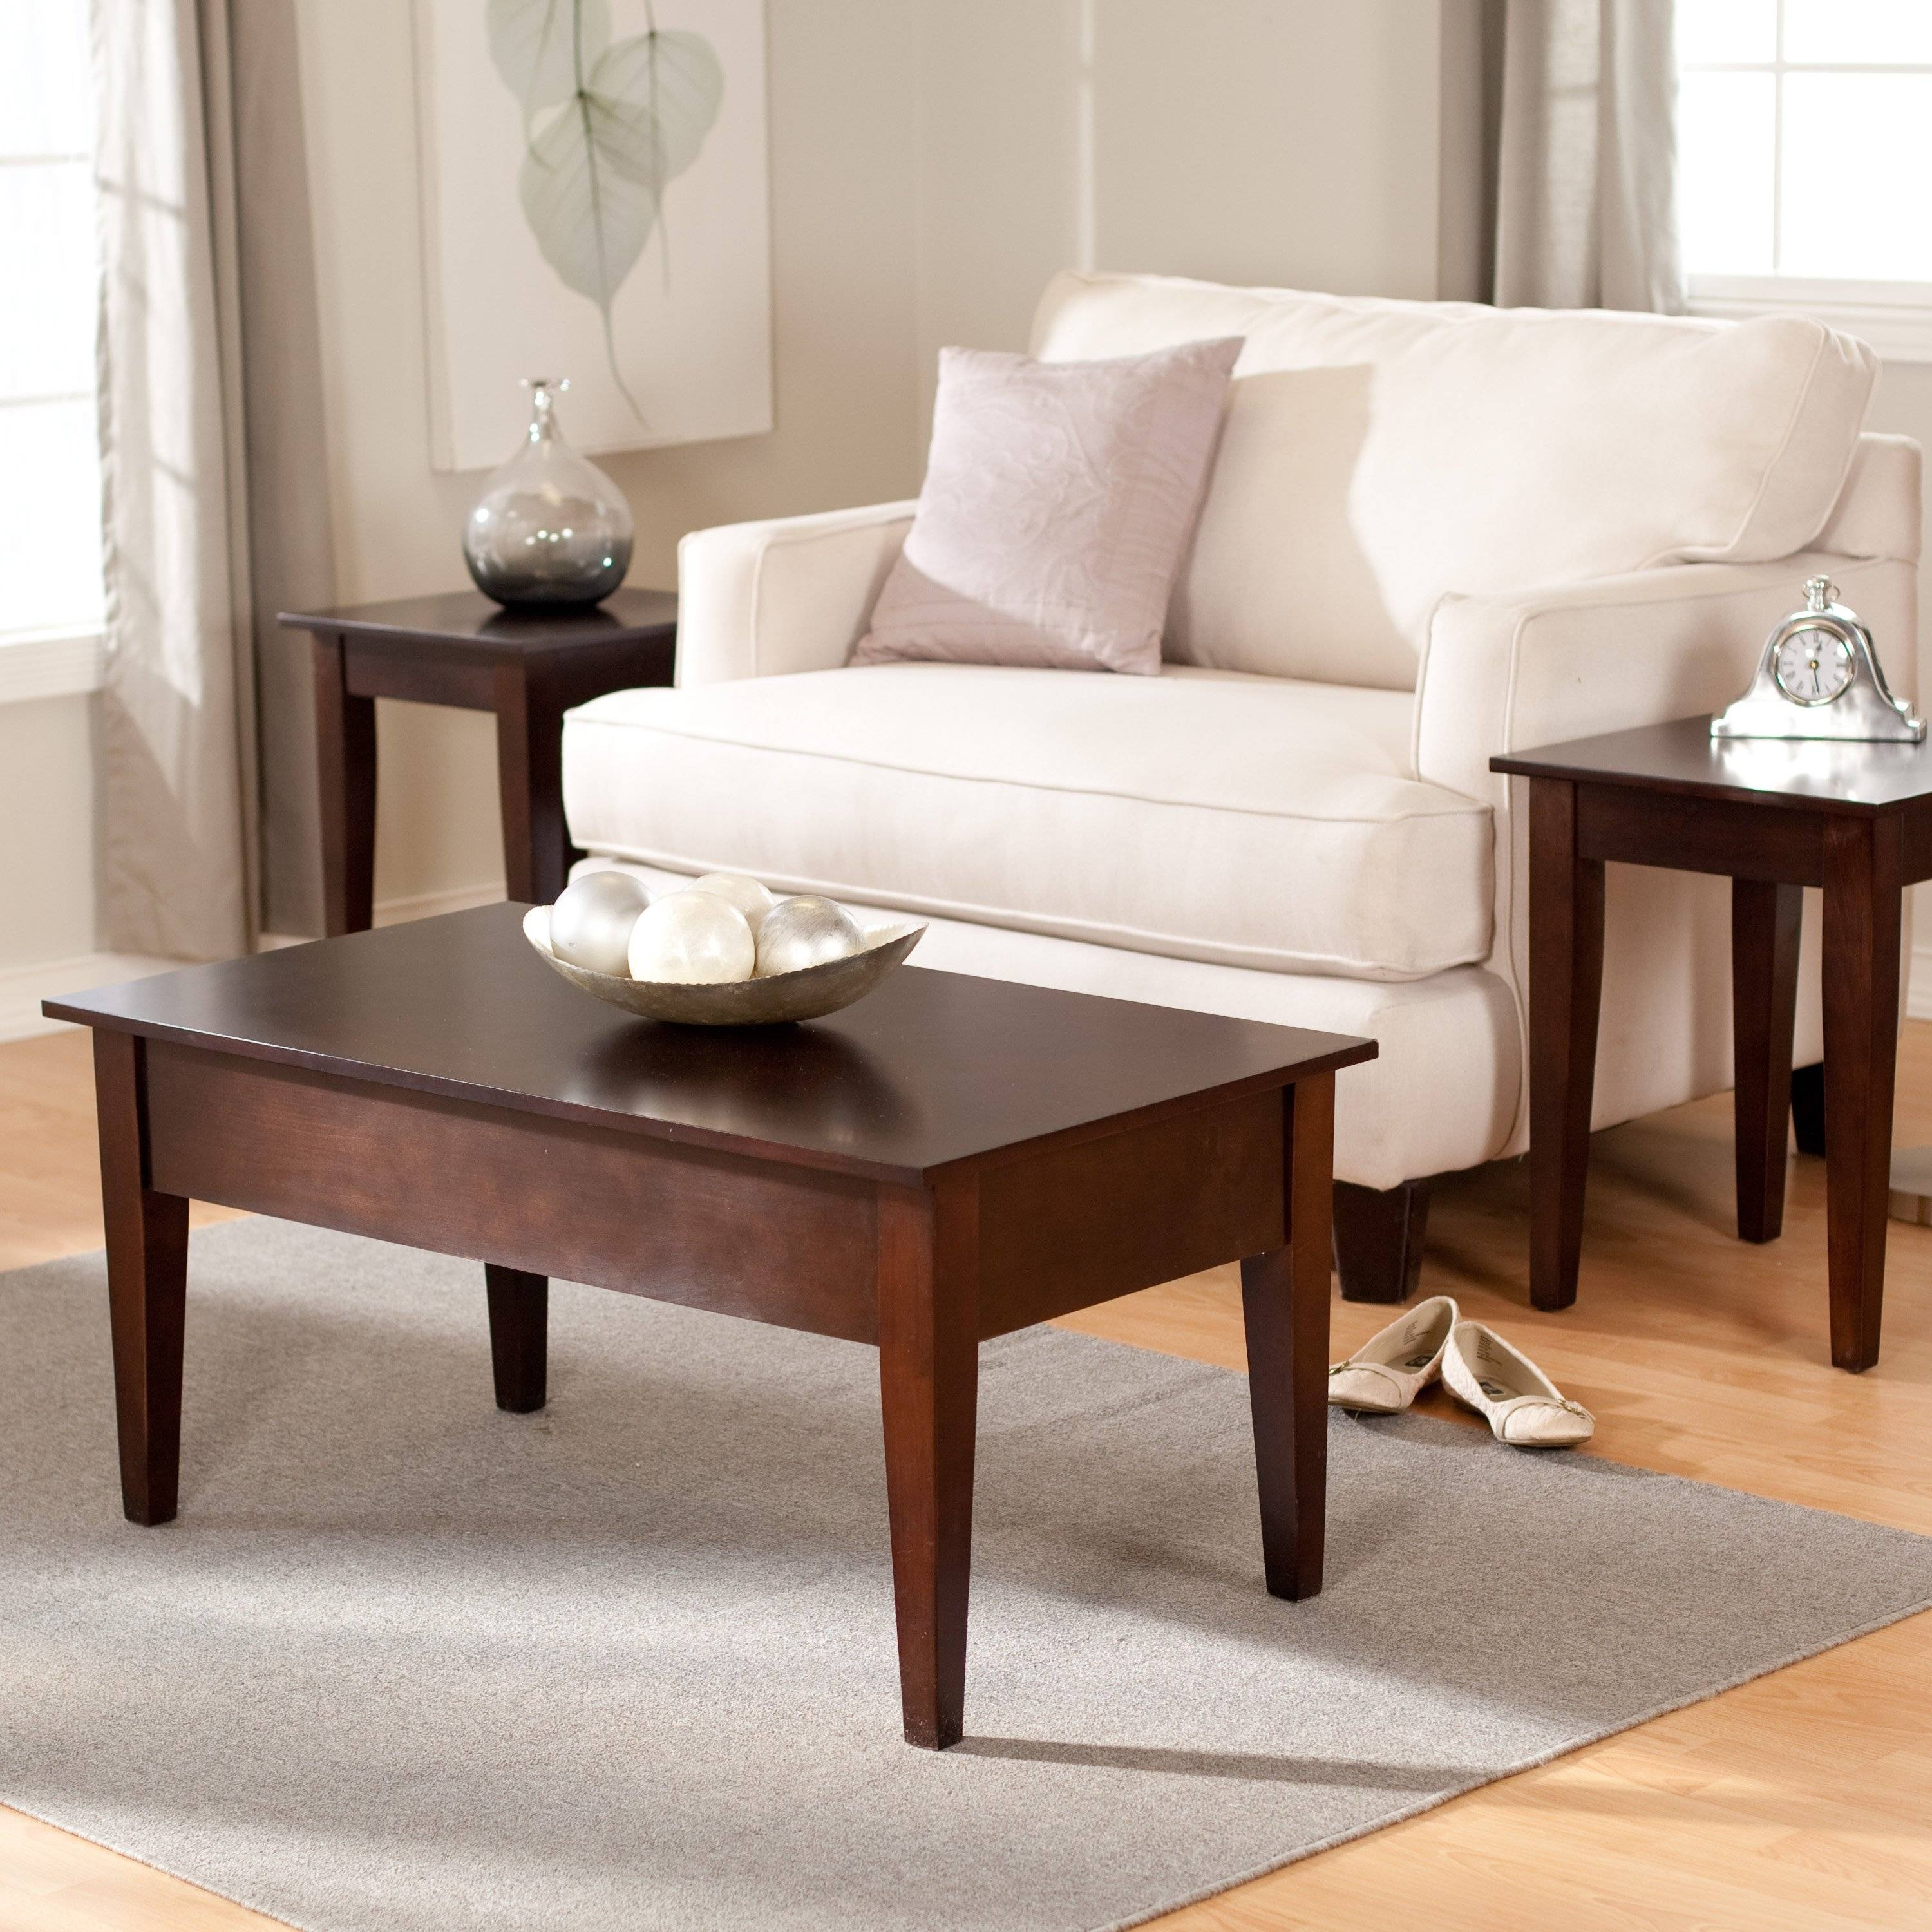 Turner Lift Top Coffee Table - Espresso | Hayneedle throughout Espresso Coffee Tables (Image 27 of 30)